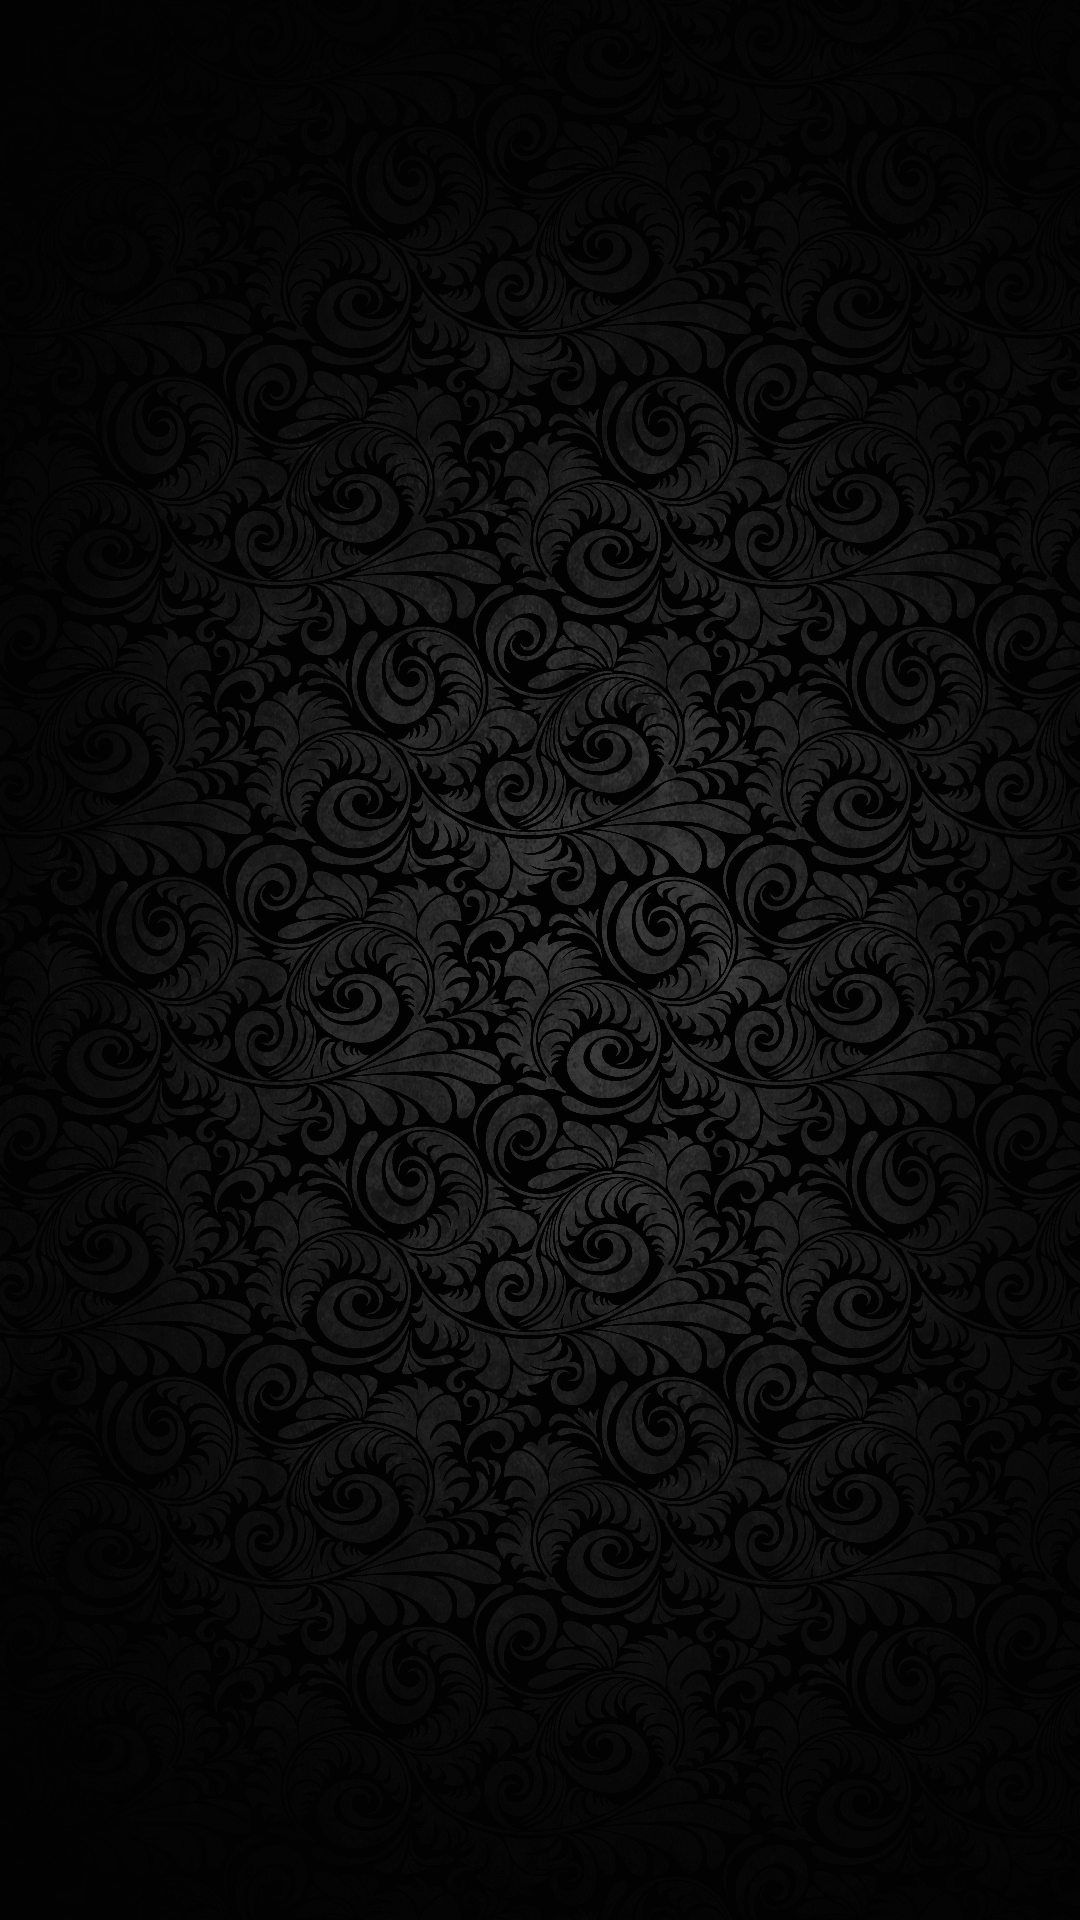 Hd Black 3d Iphone Wallpaper 3d Mobile Background Grey Wallpaper Android Black Wallpaper For Mobile Android Wallpaper